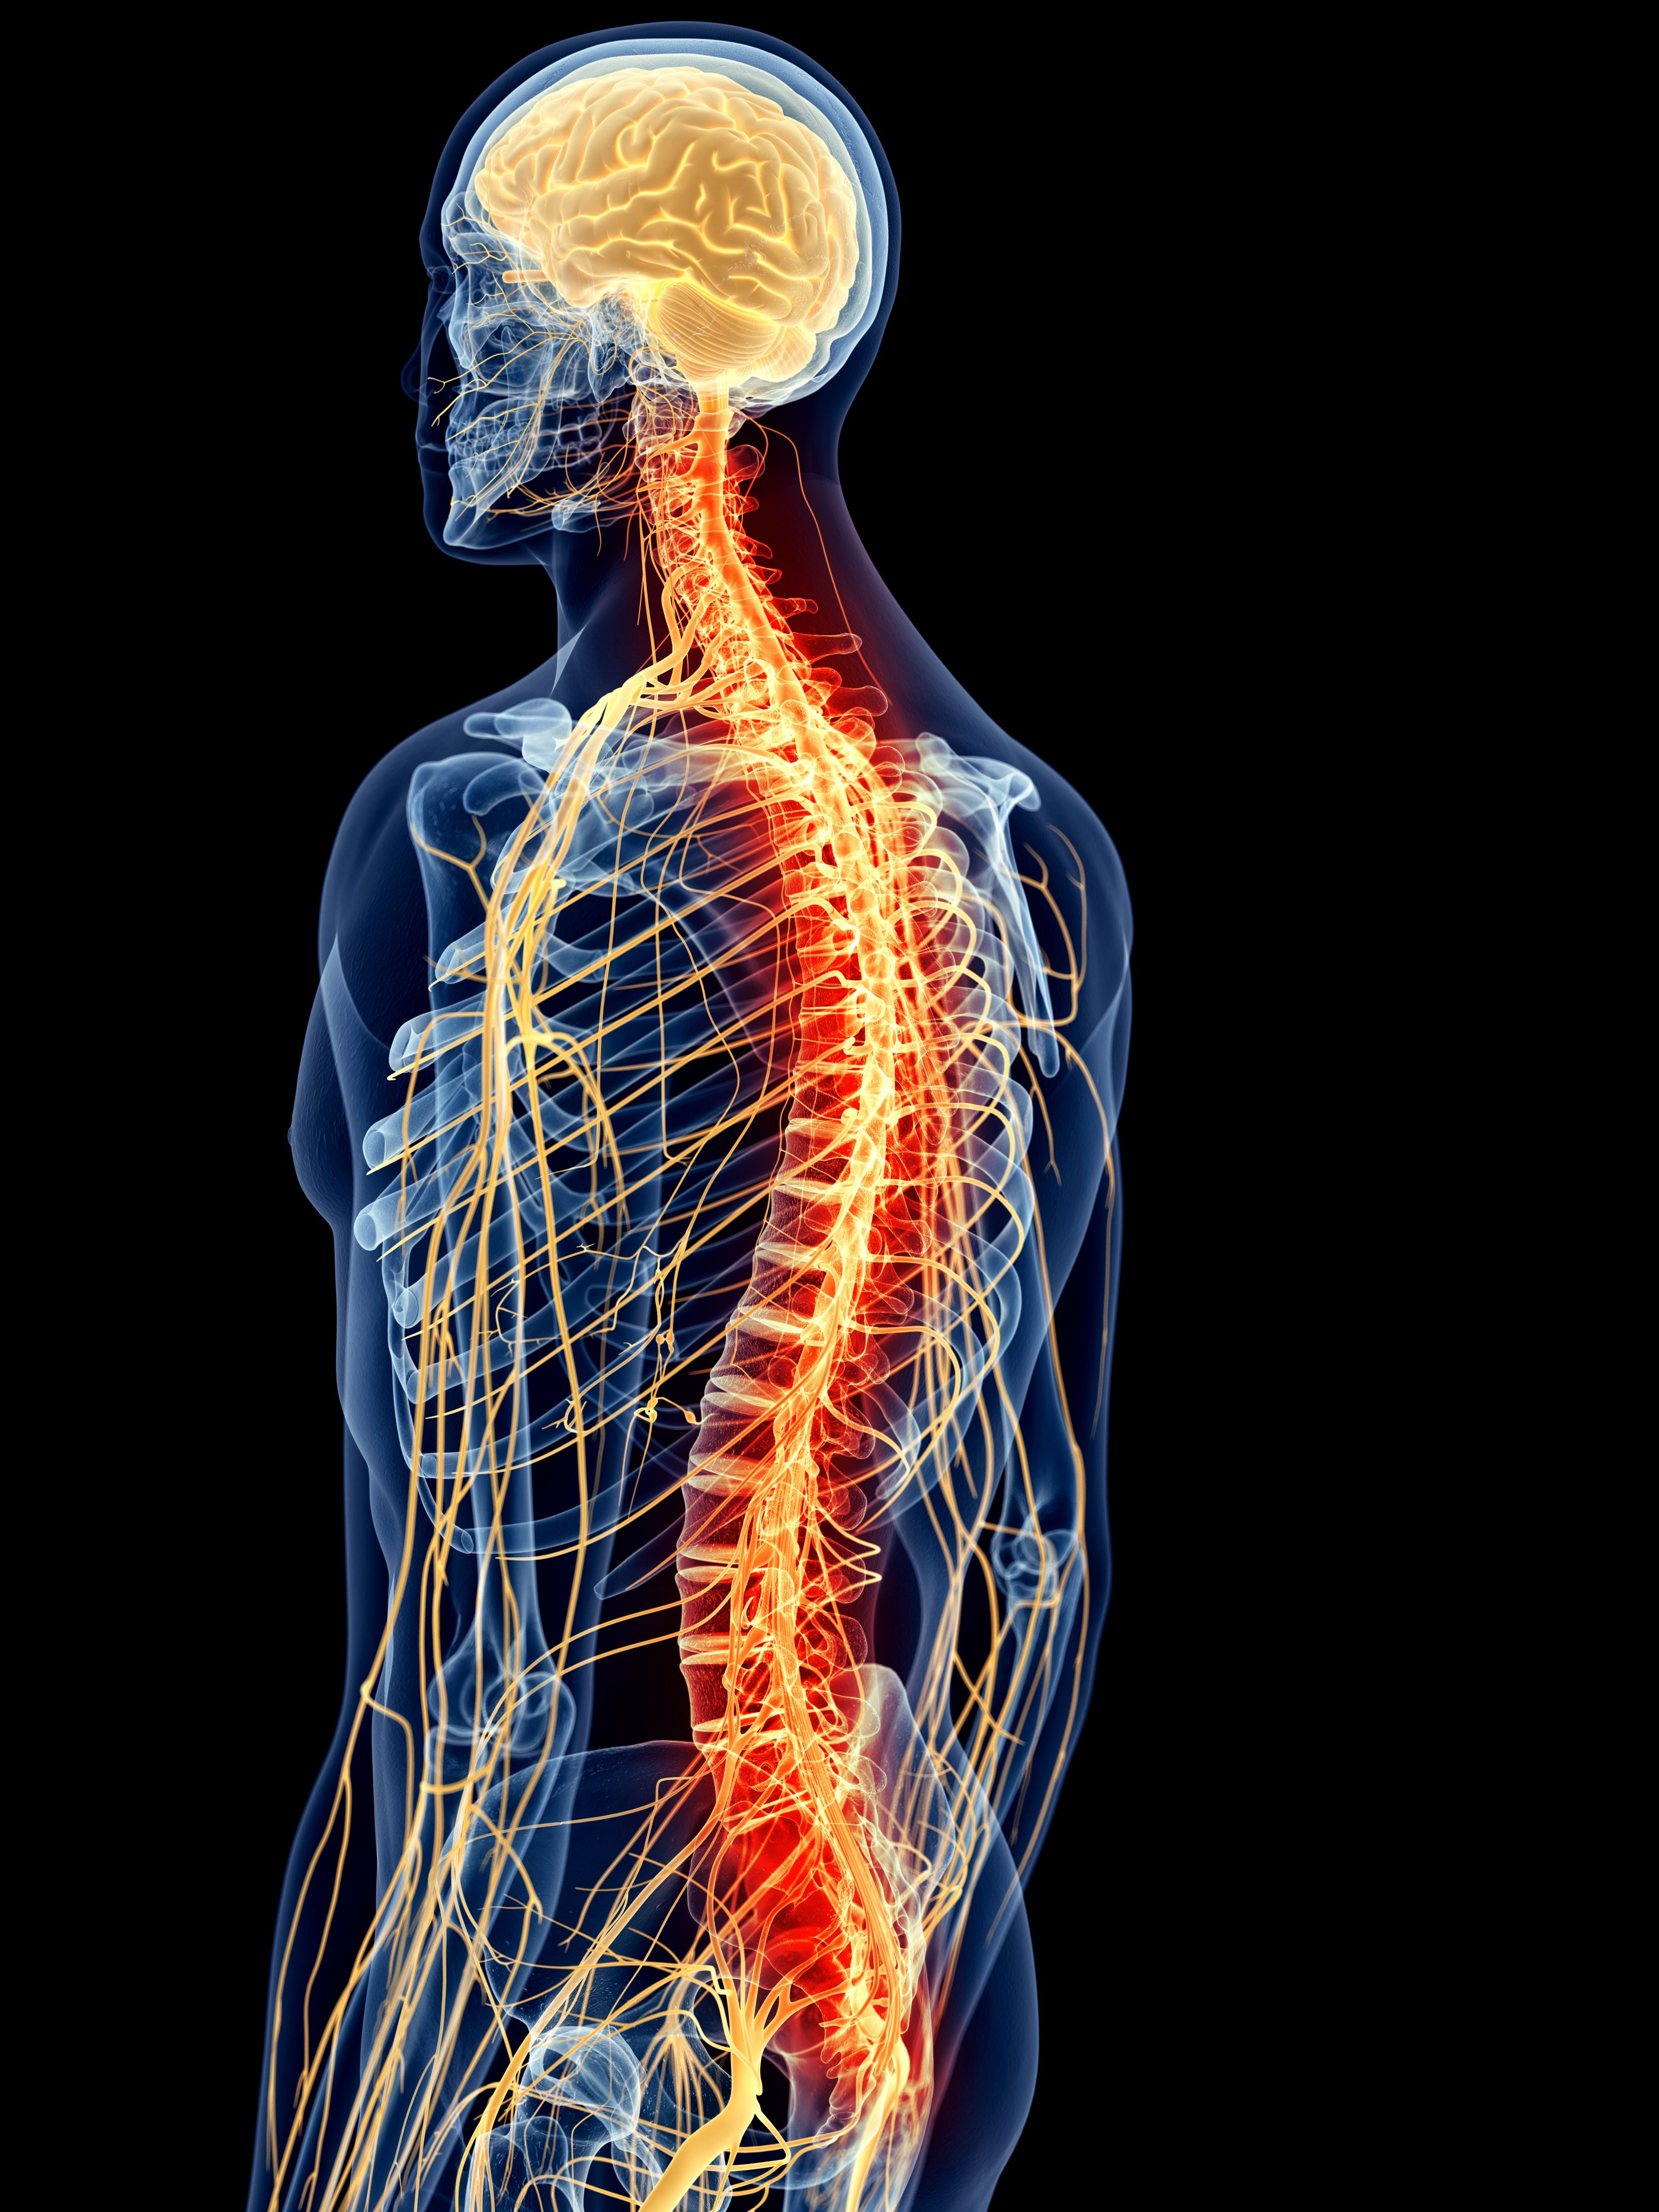 Treating the wounded: neuroprotection strategies in spinal cord ...